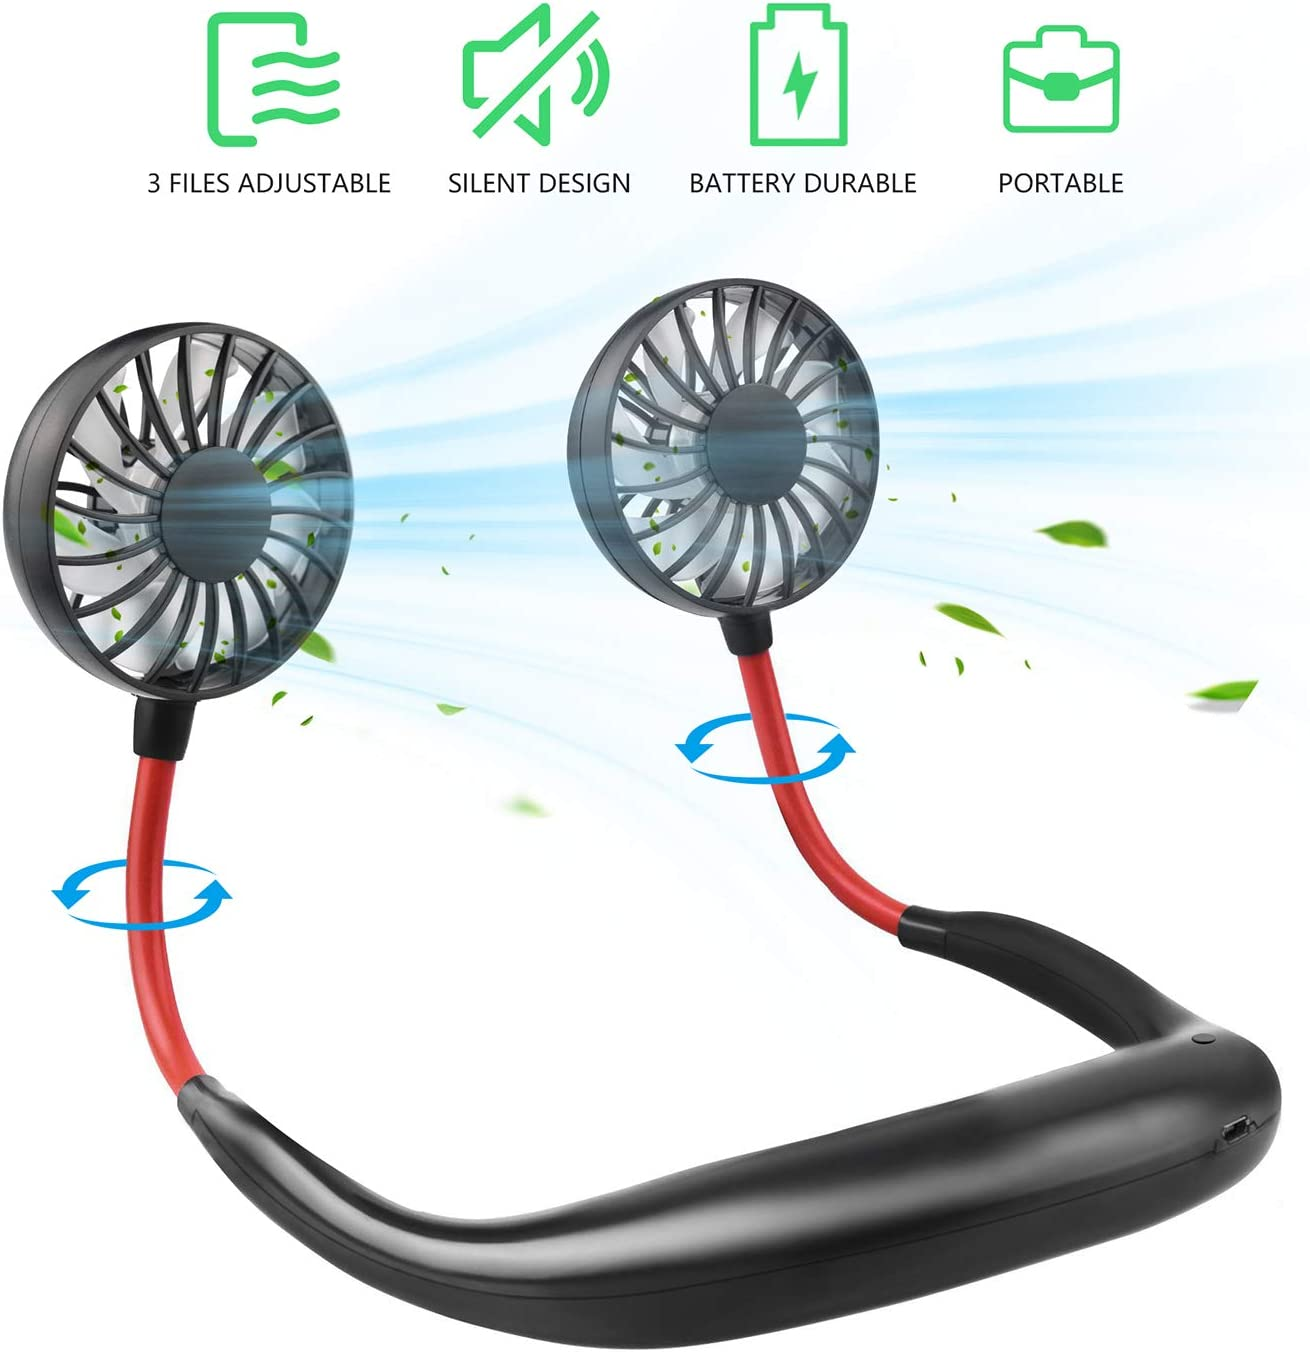 Hand-Free Personal Fan, Portable Neck Fan USB Rechargeable with 3 Level Speed Adjustable Headphone Mini Design Wearable Neckband Fan Cooling Desktop Dual Wind Head for Travel Sport and Office Room.